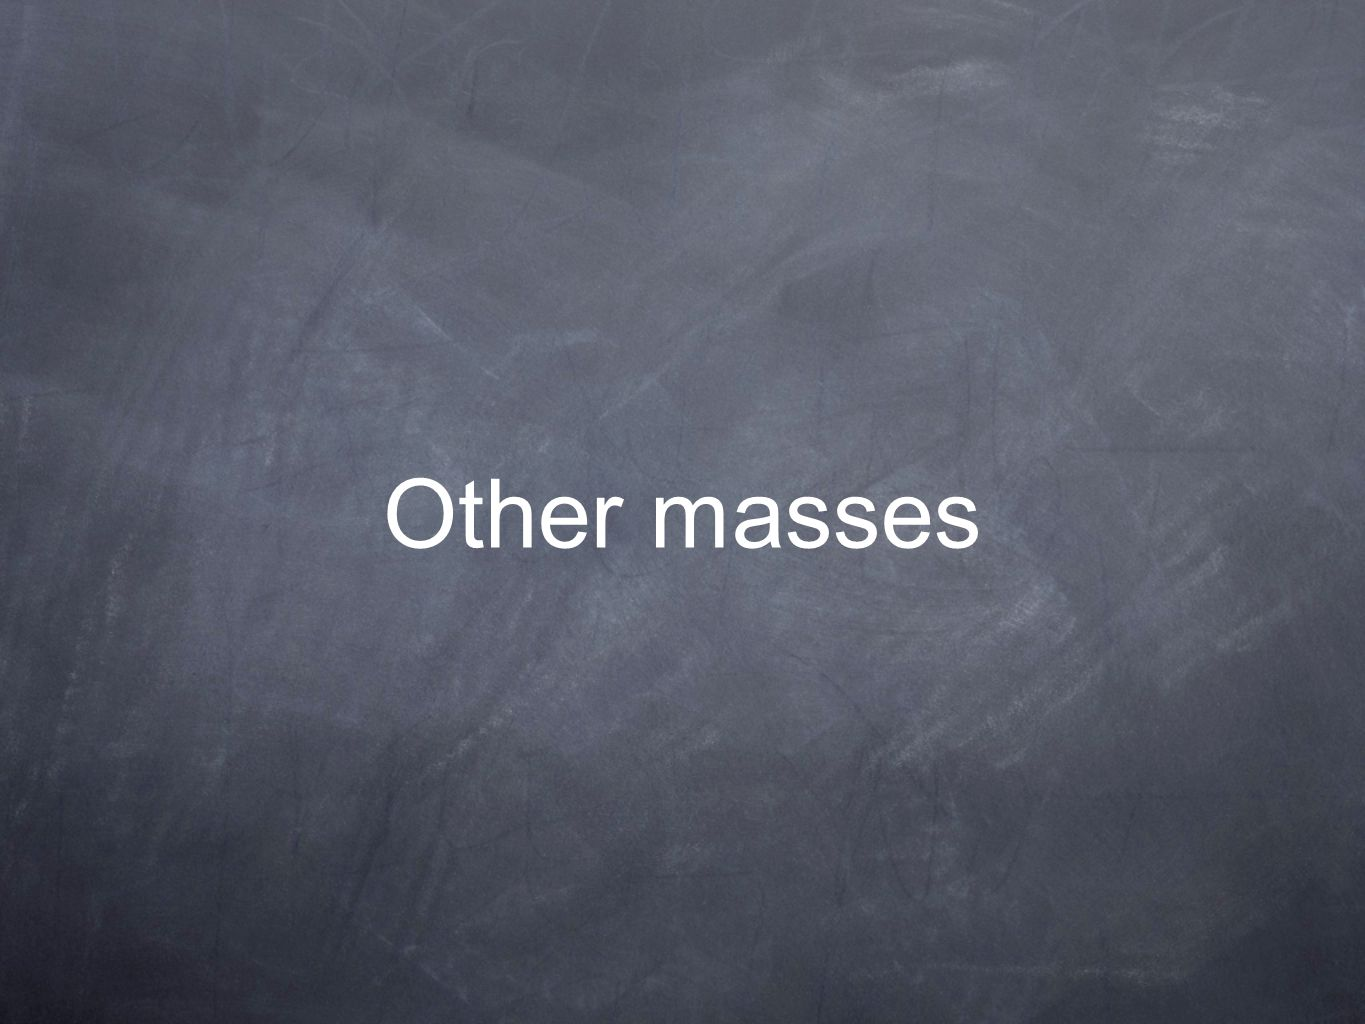 Other masses